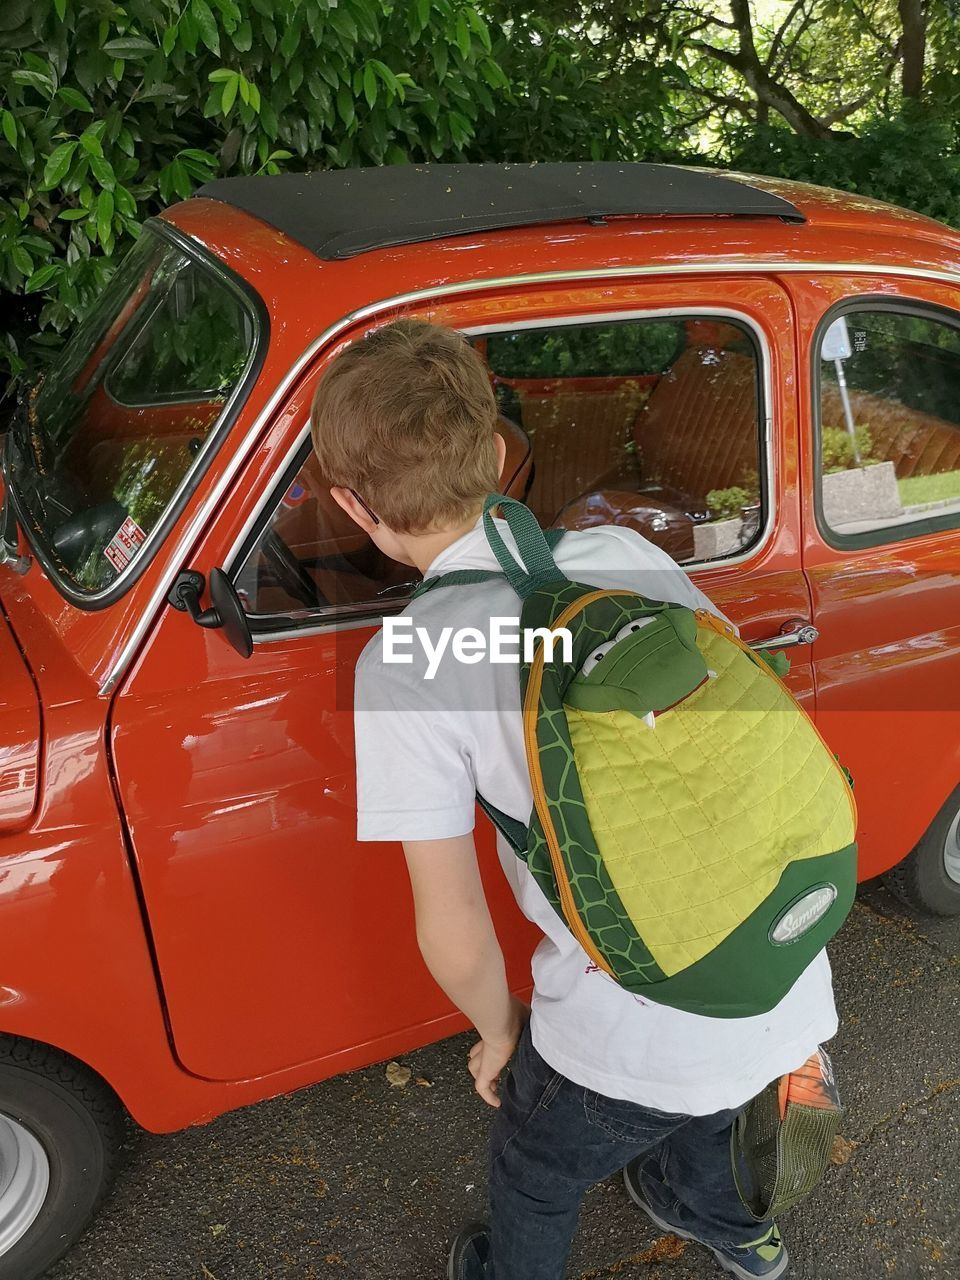 mode of transportation, transportation, real people, childhood, boys, one person, day, three quarter length, men, males, child, land vehicle, car, leisure activity, motor vehicle, red, casual clothing, lifestyles, outdoors, shorts